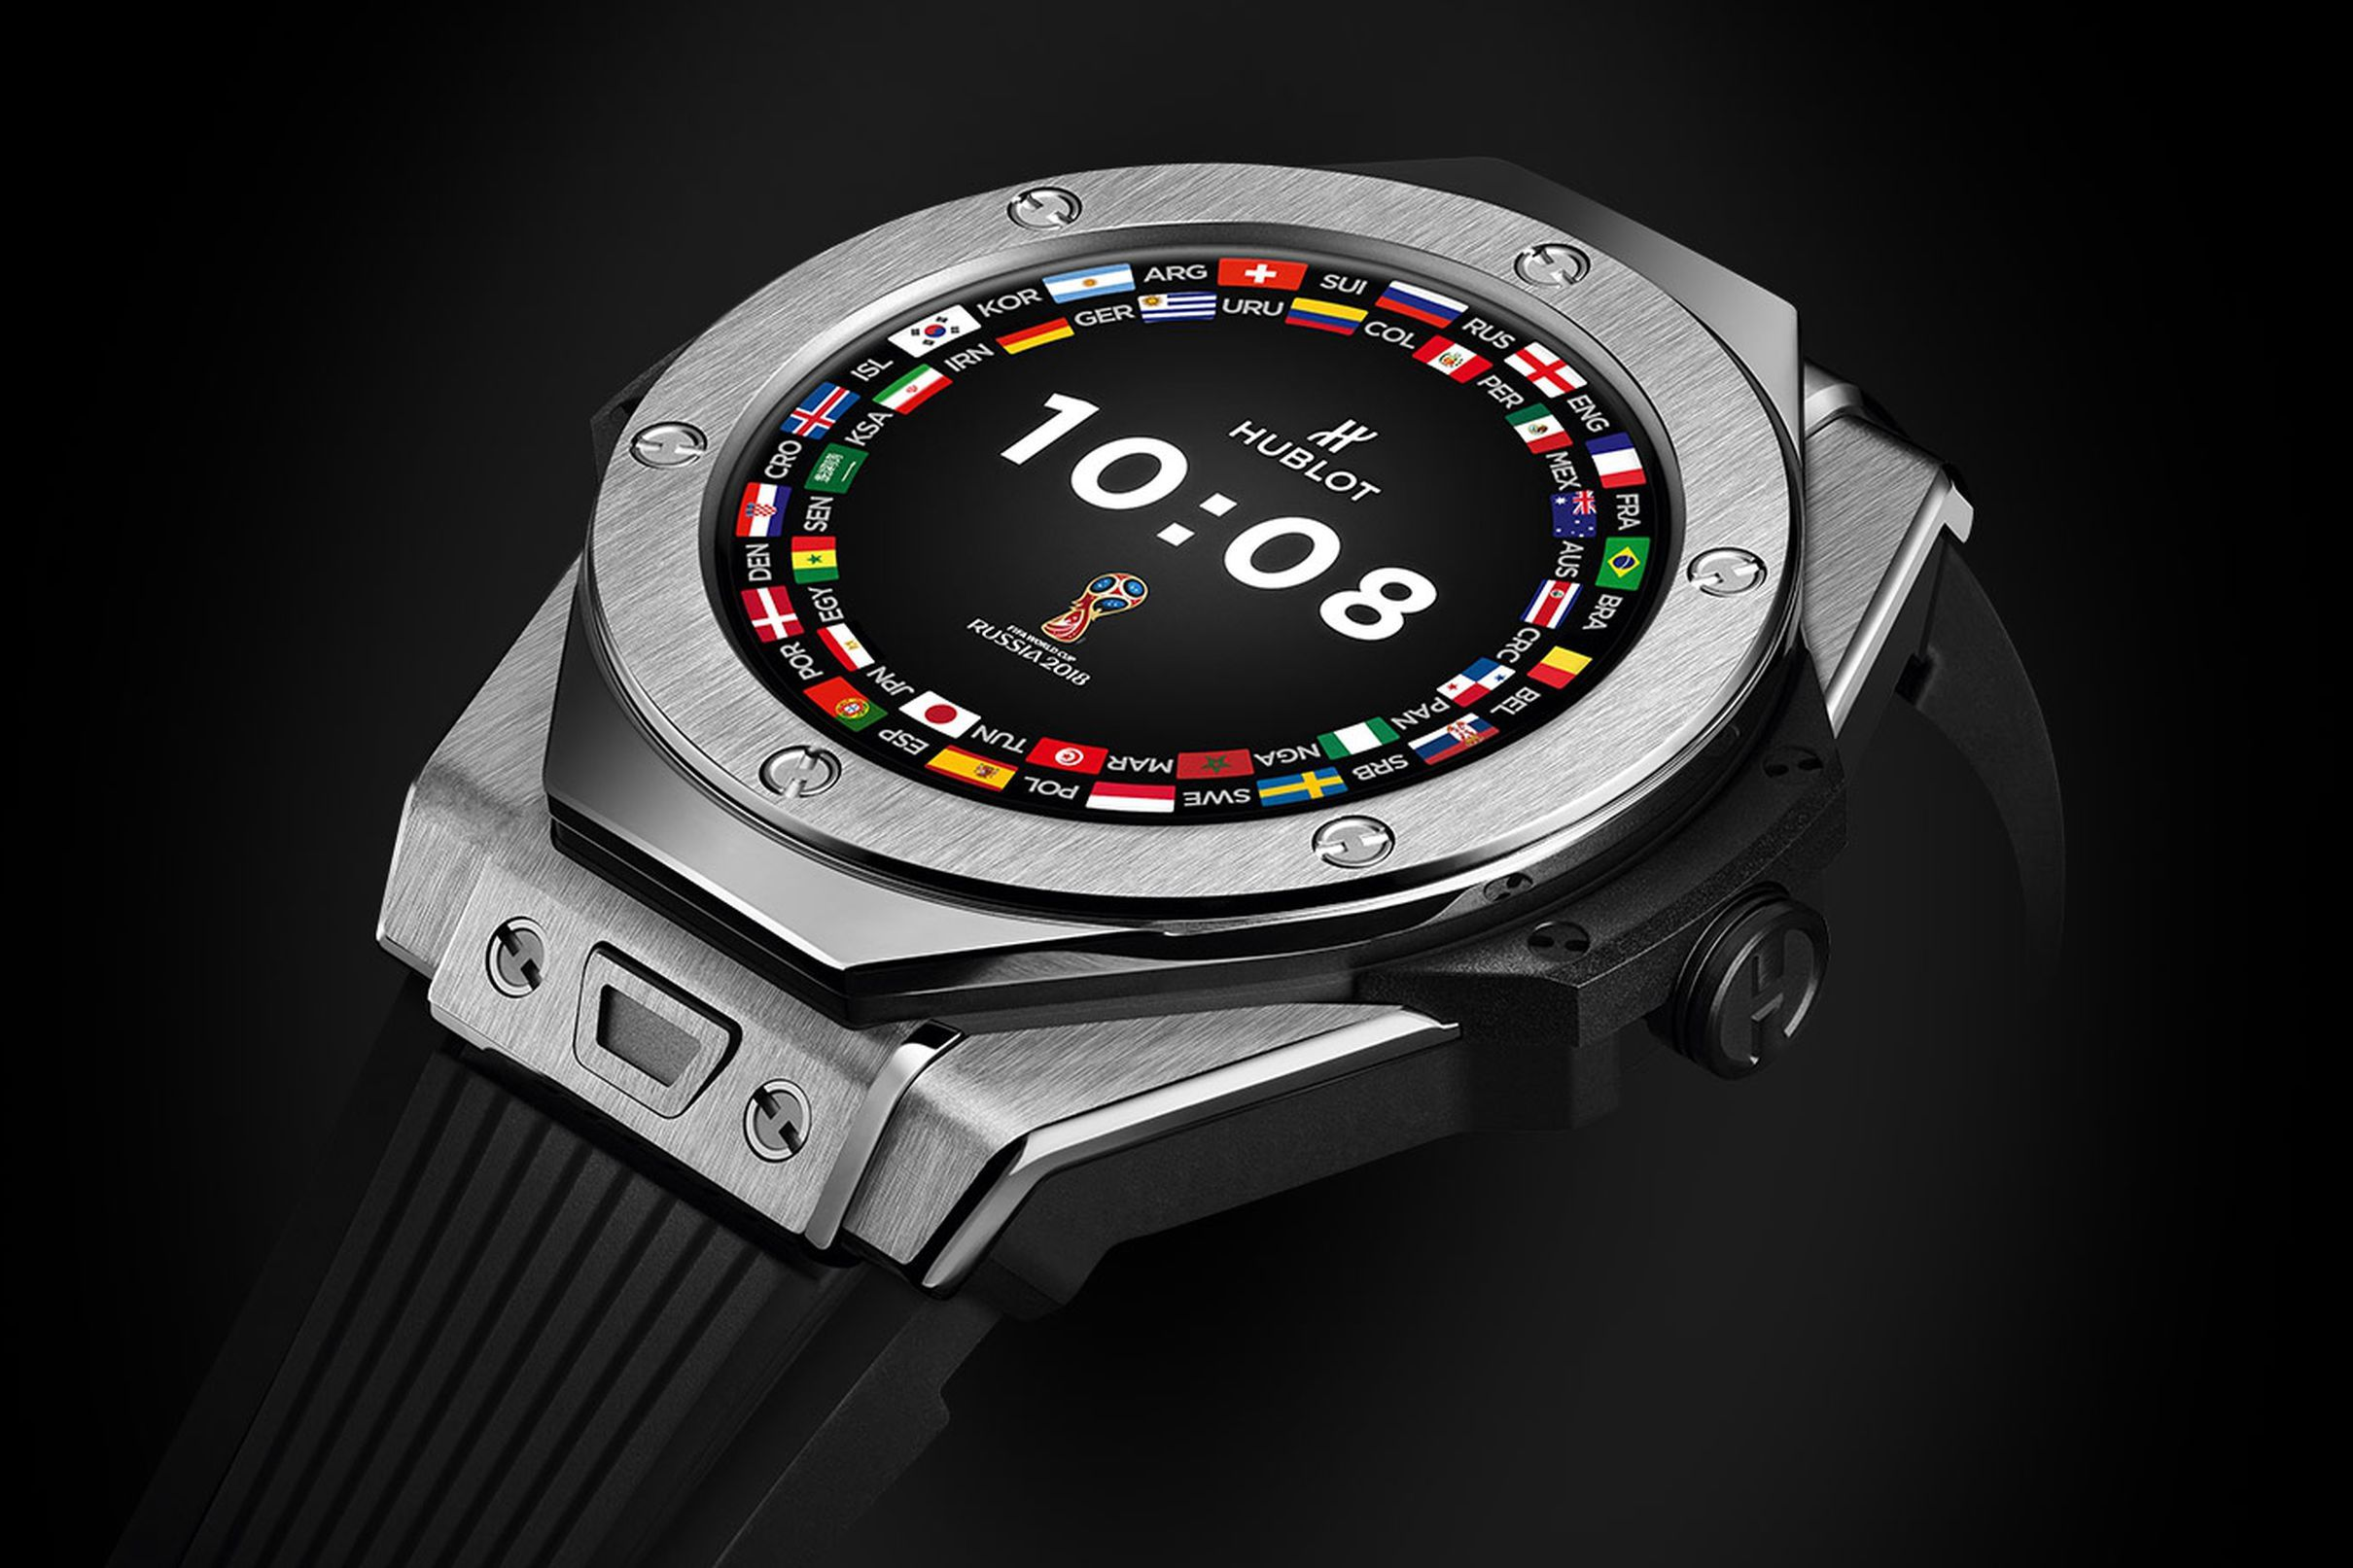 610f2deeeb8 World Cup referees will use Hublot s new Wear OS watch to check for goals